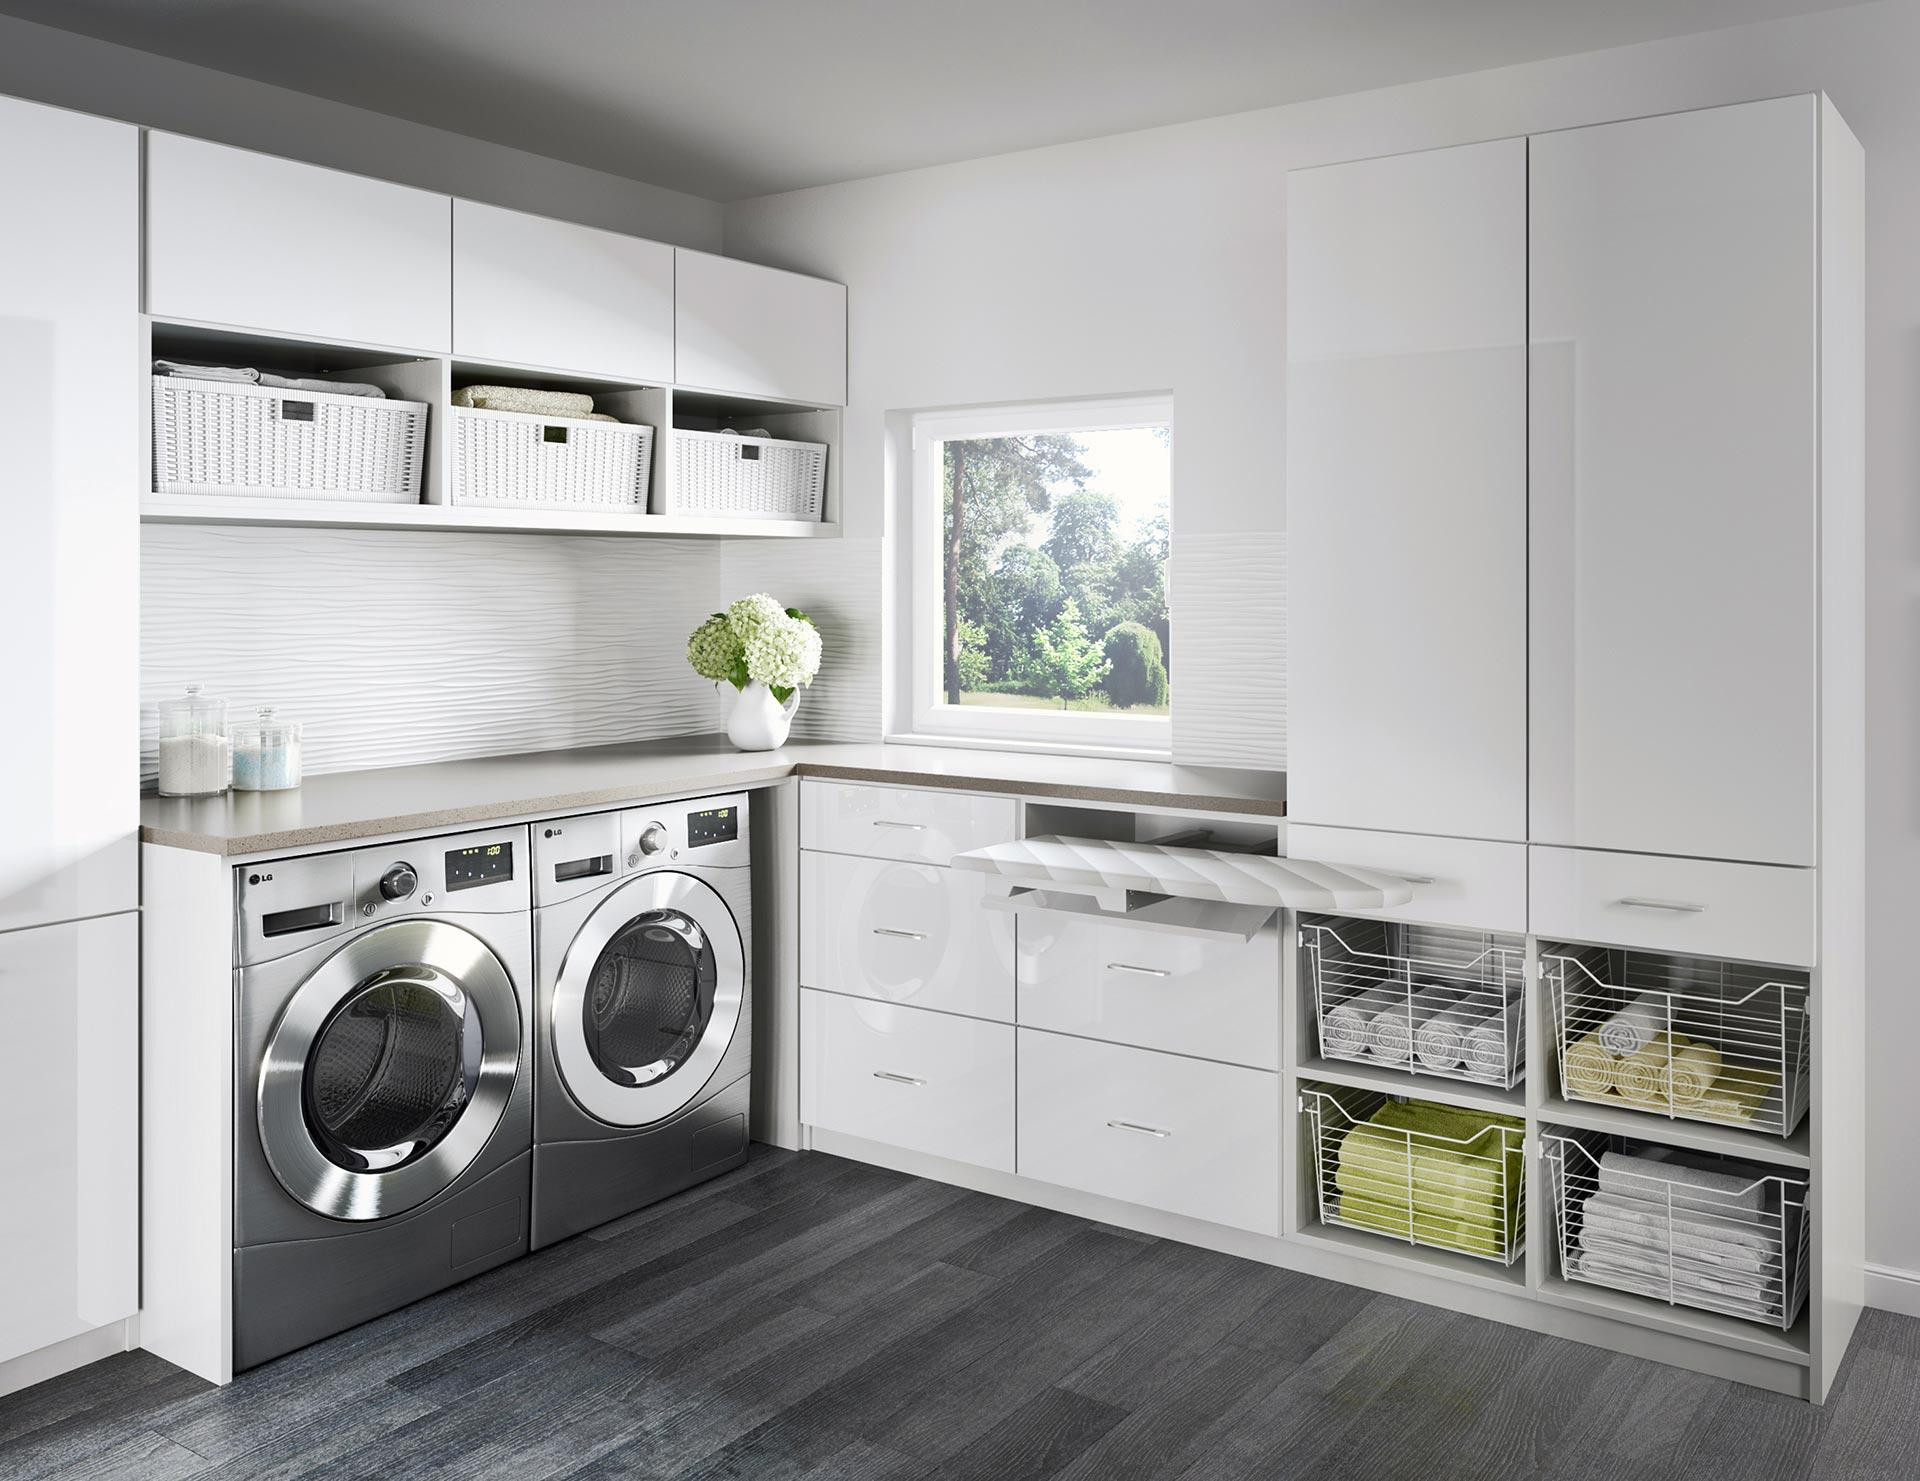 Best ideas about Laundry Room Images . Save or Pin Laundry Room Cabinets & Storage Ideas by California Closets Now.